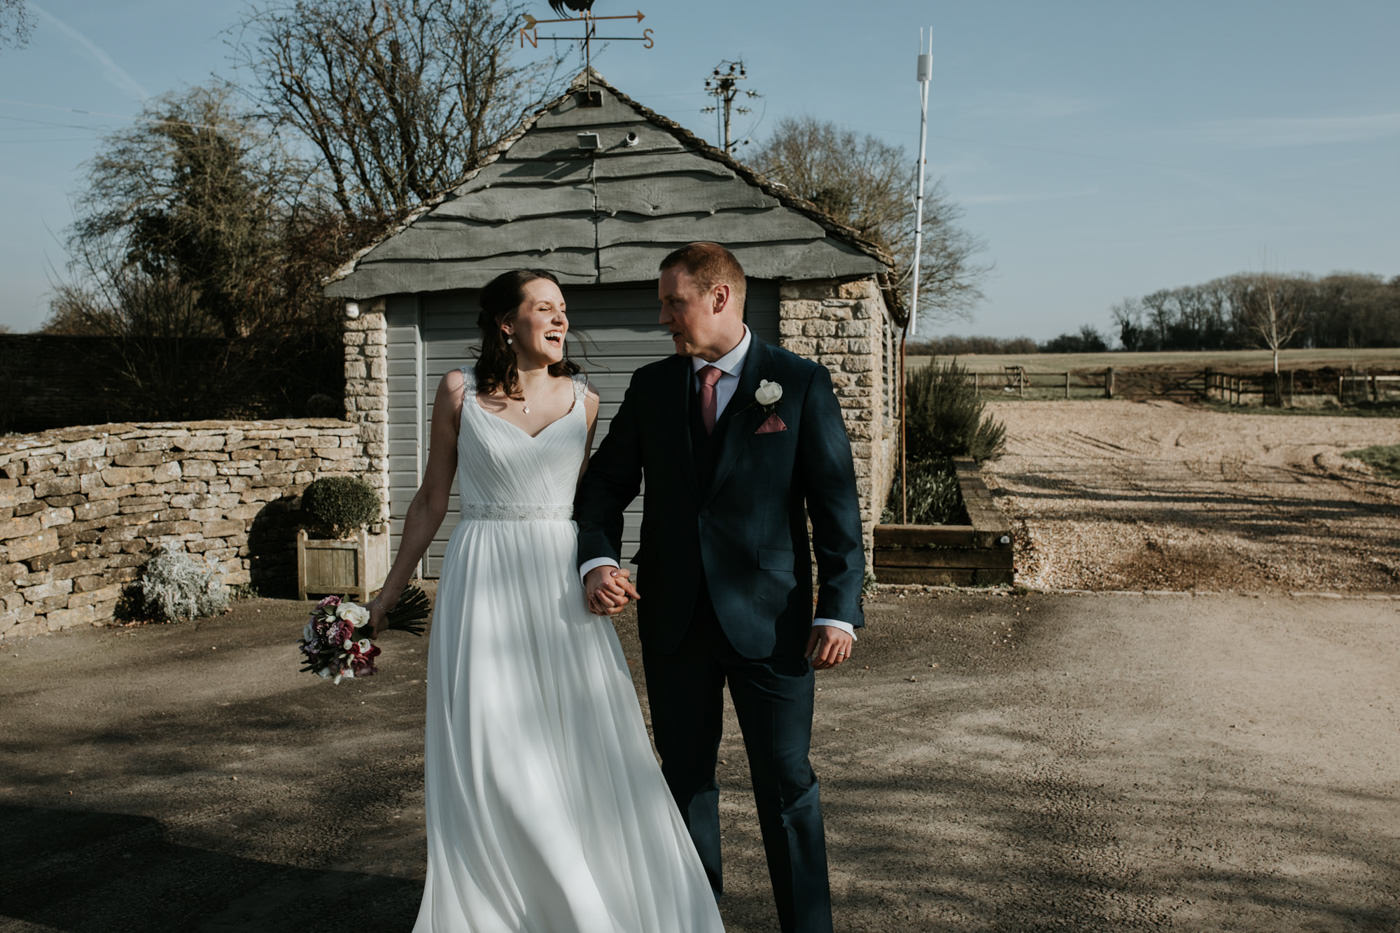 Ruth and Ben, Winkworth Farm, Wiltshire 63